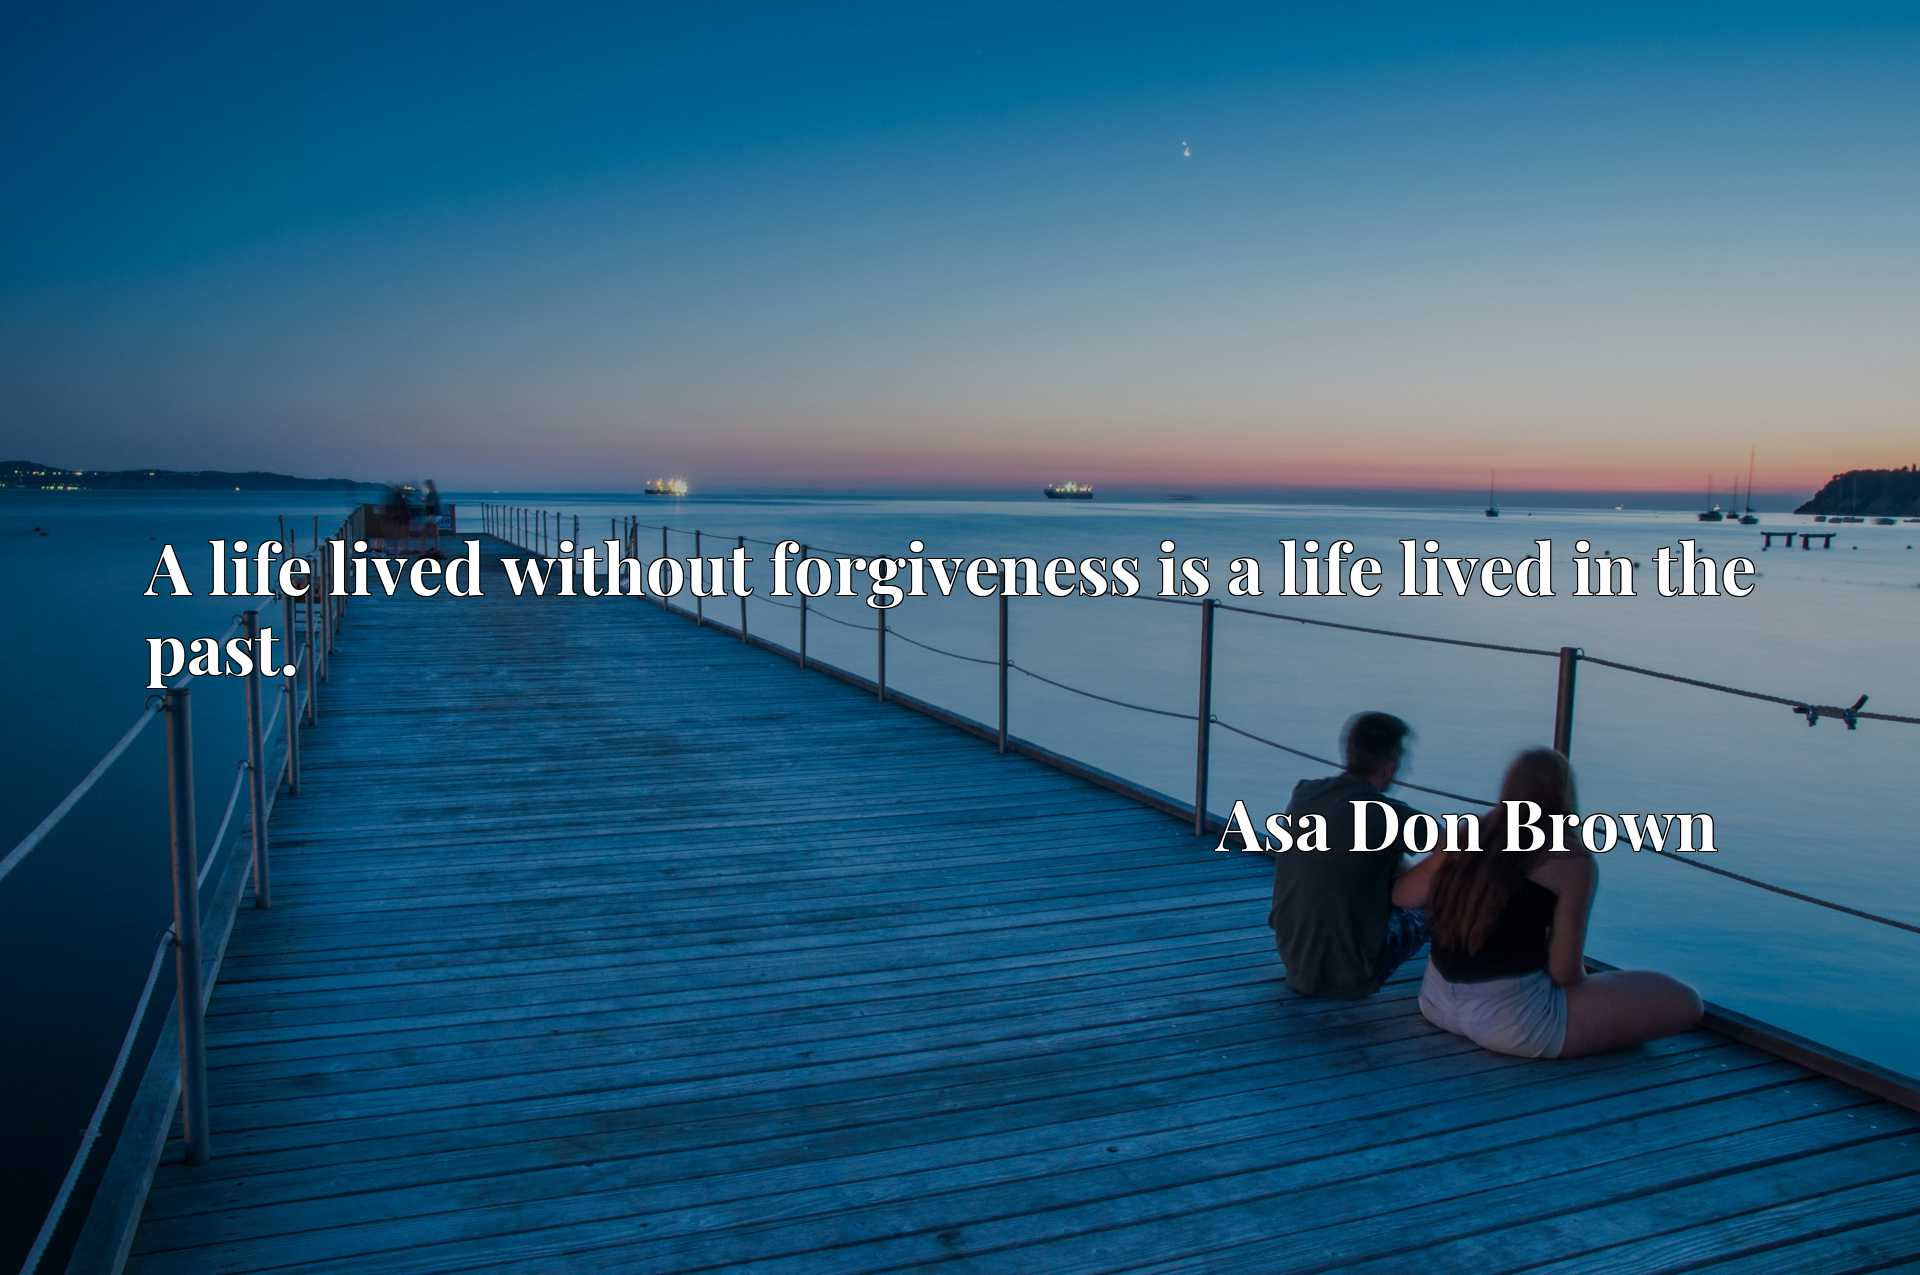 A life lived without forgiveness is a life lived in the past.